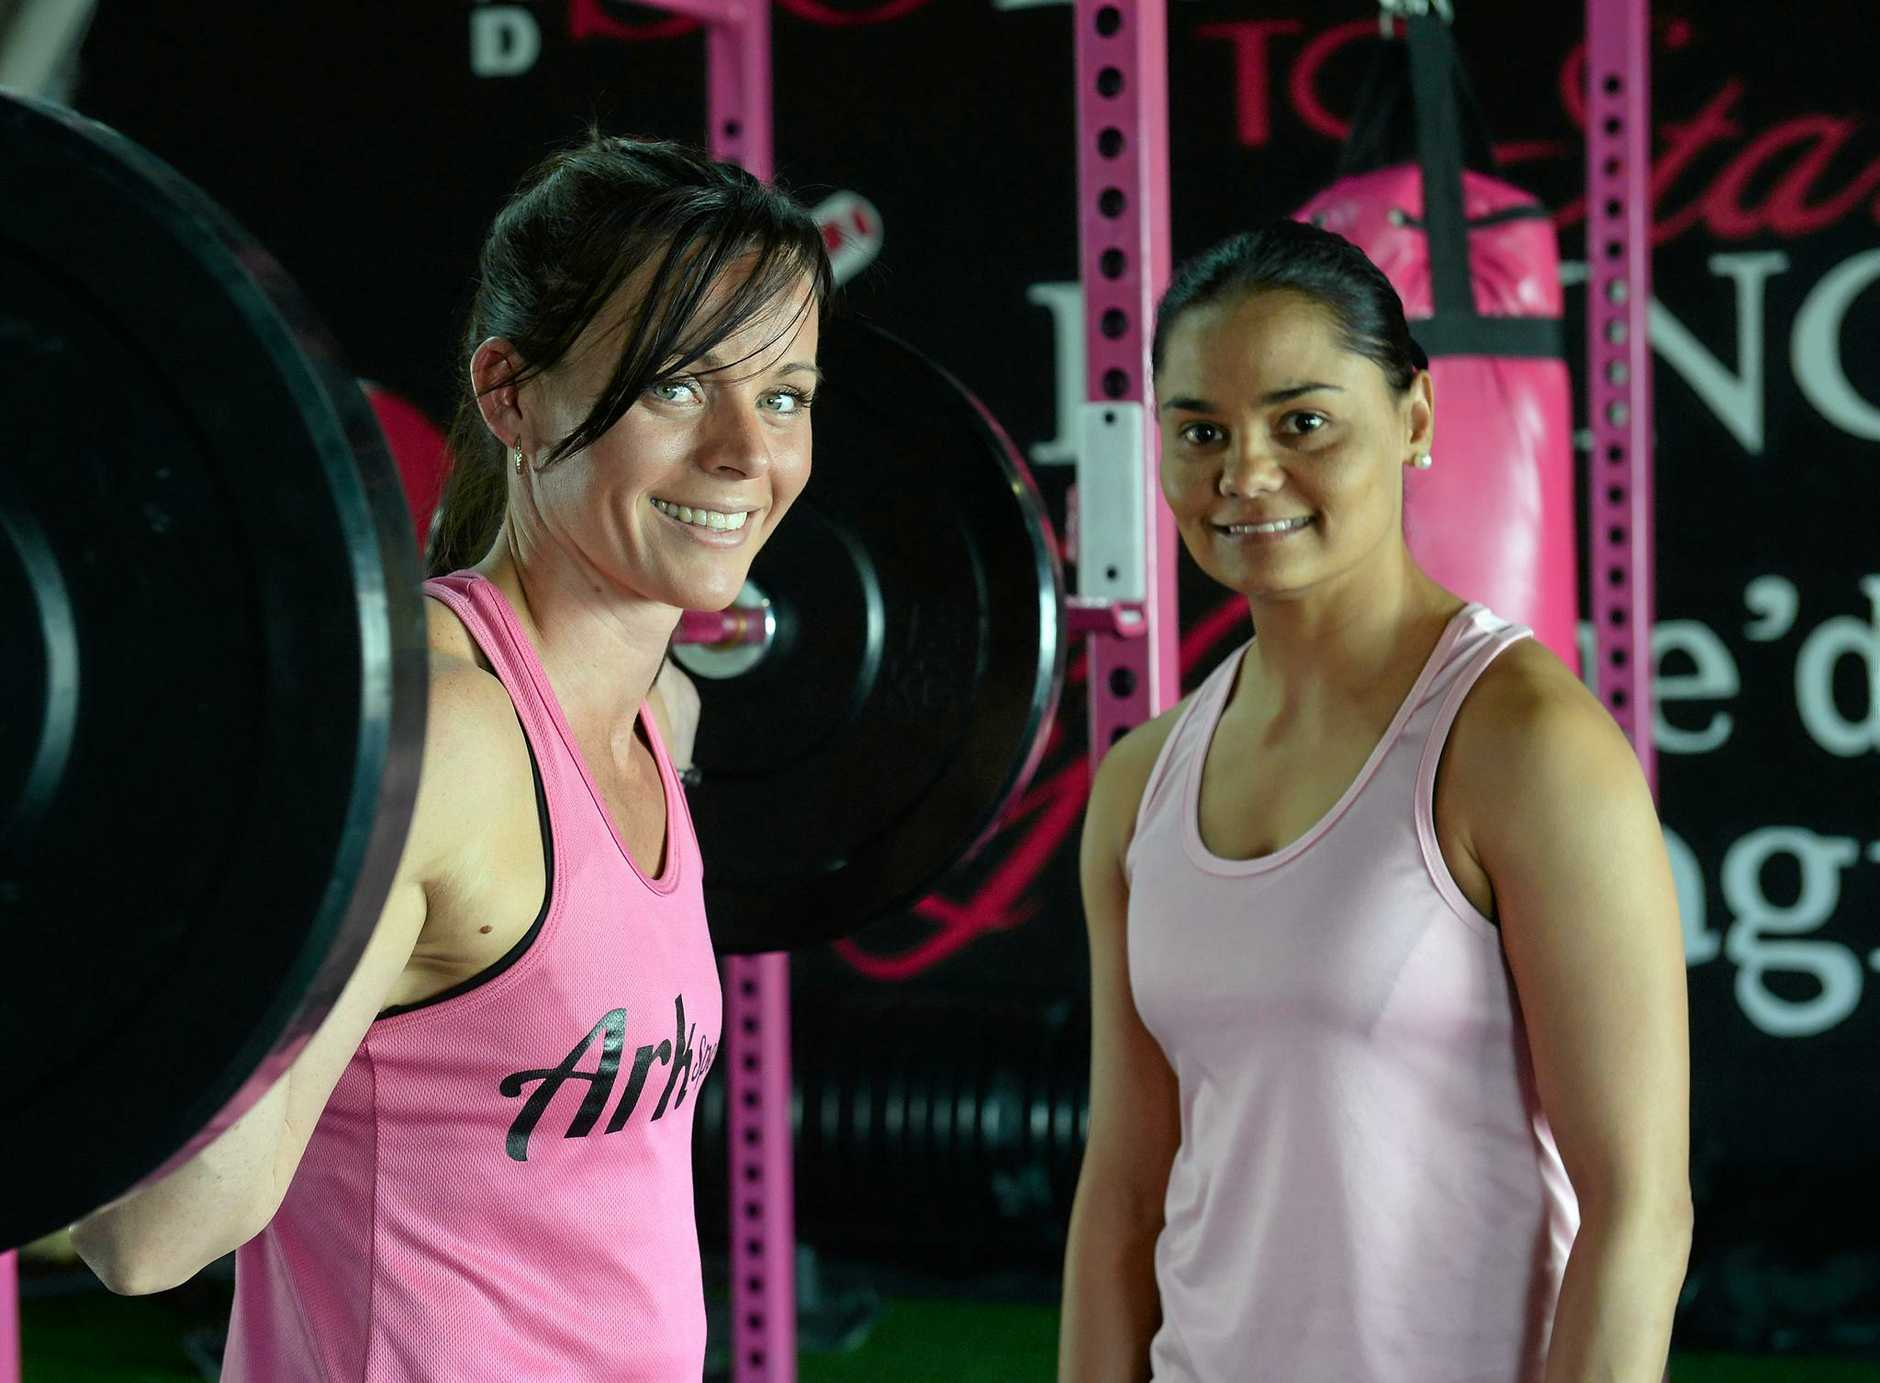 LET'S GET PHYSICAL: Cindy Tavinor and Larin Bligh want to welcome all women to XO Ladies Gym on Kent Street.